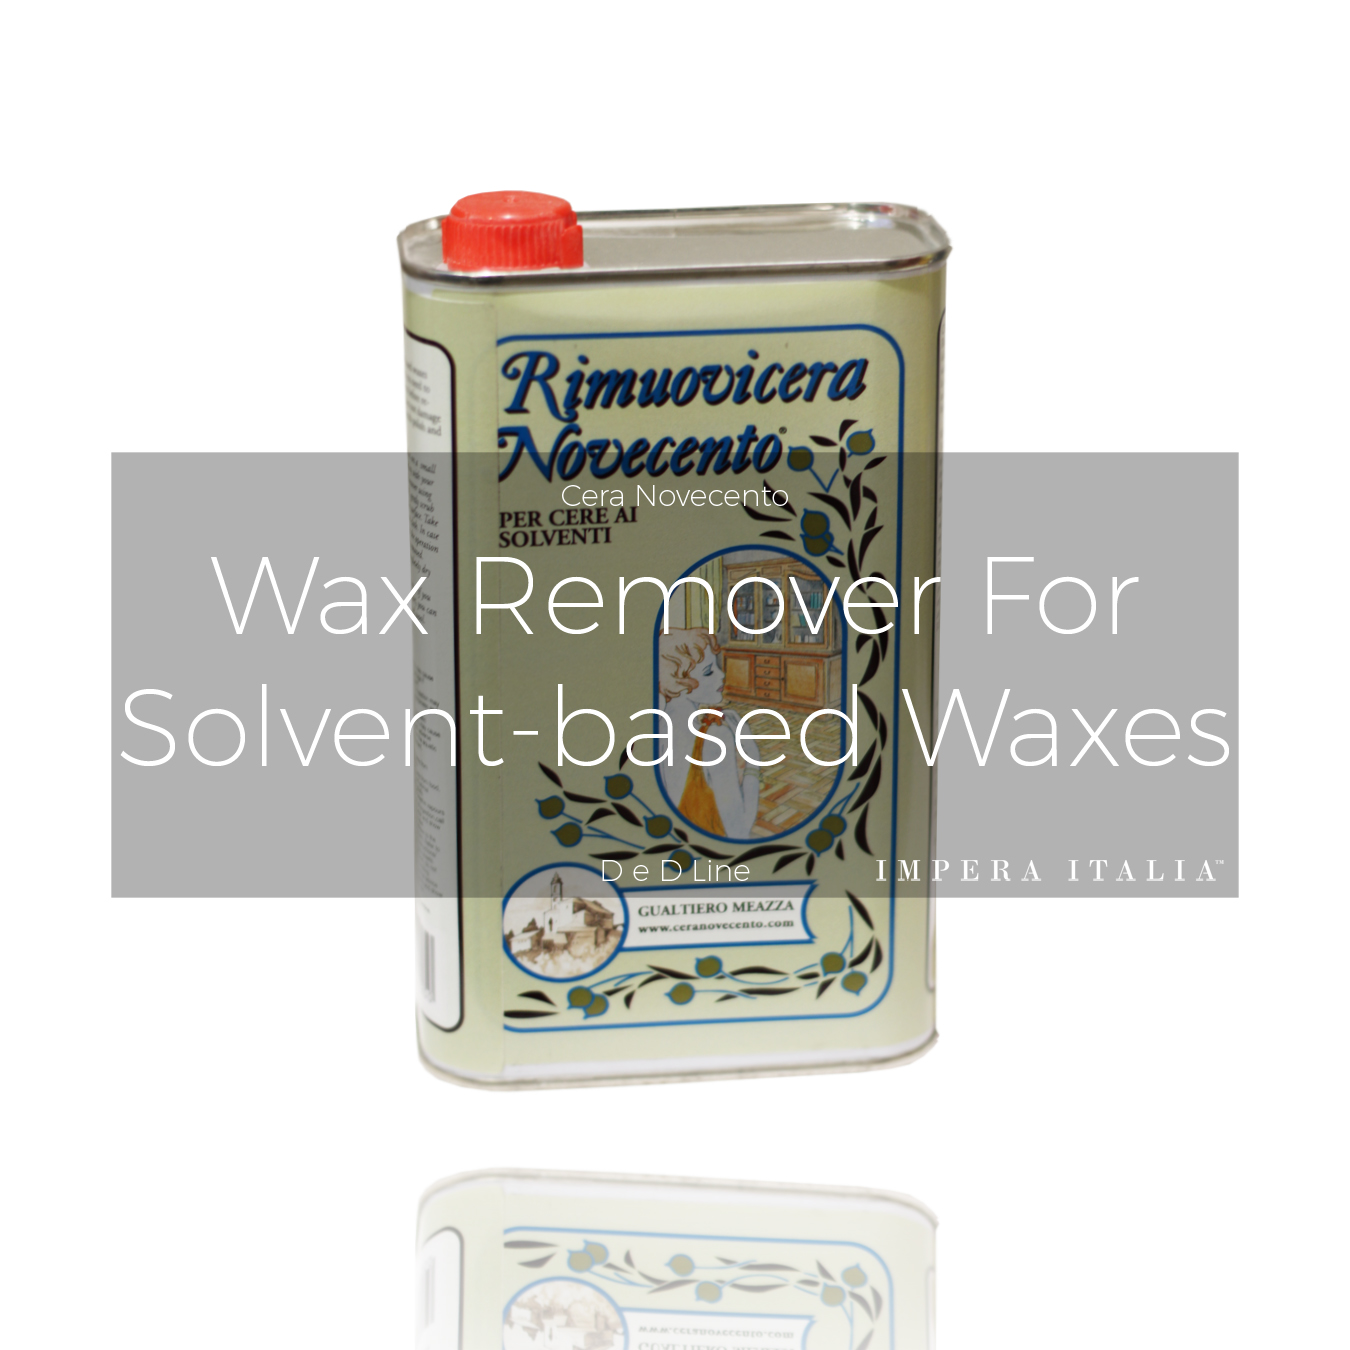 X925 wax remover for solvent based waxes